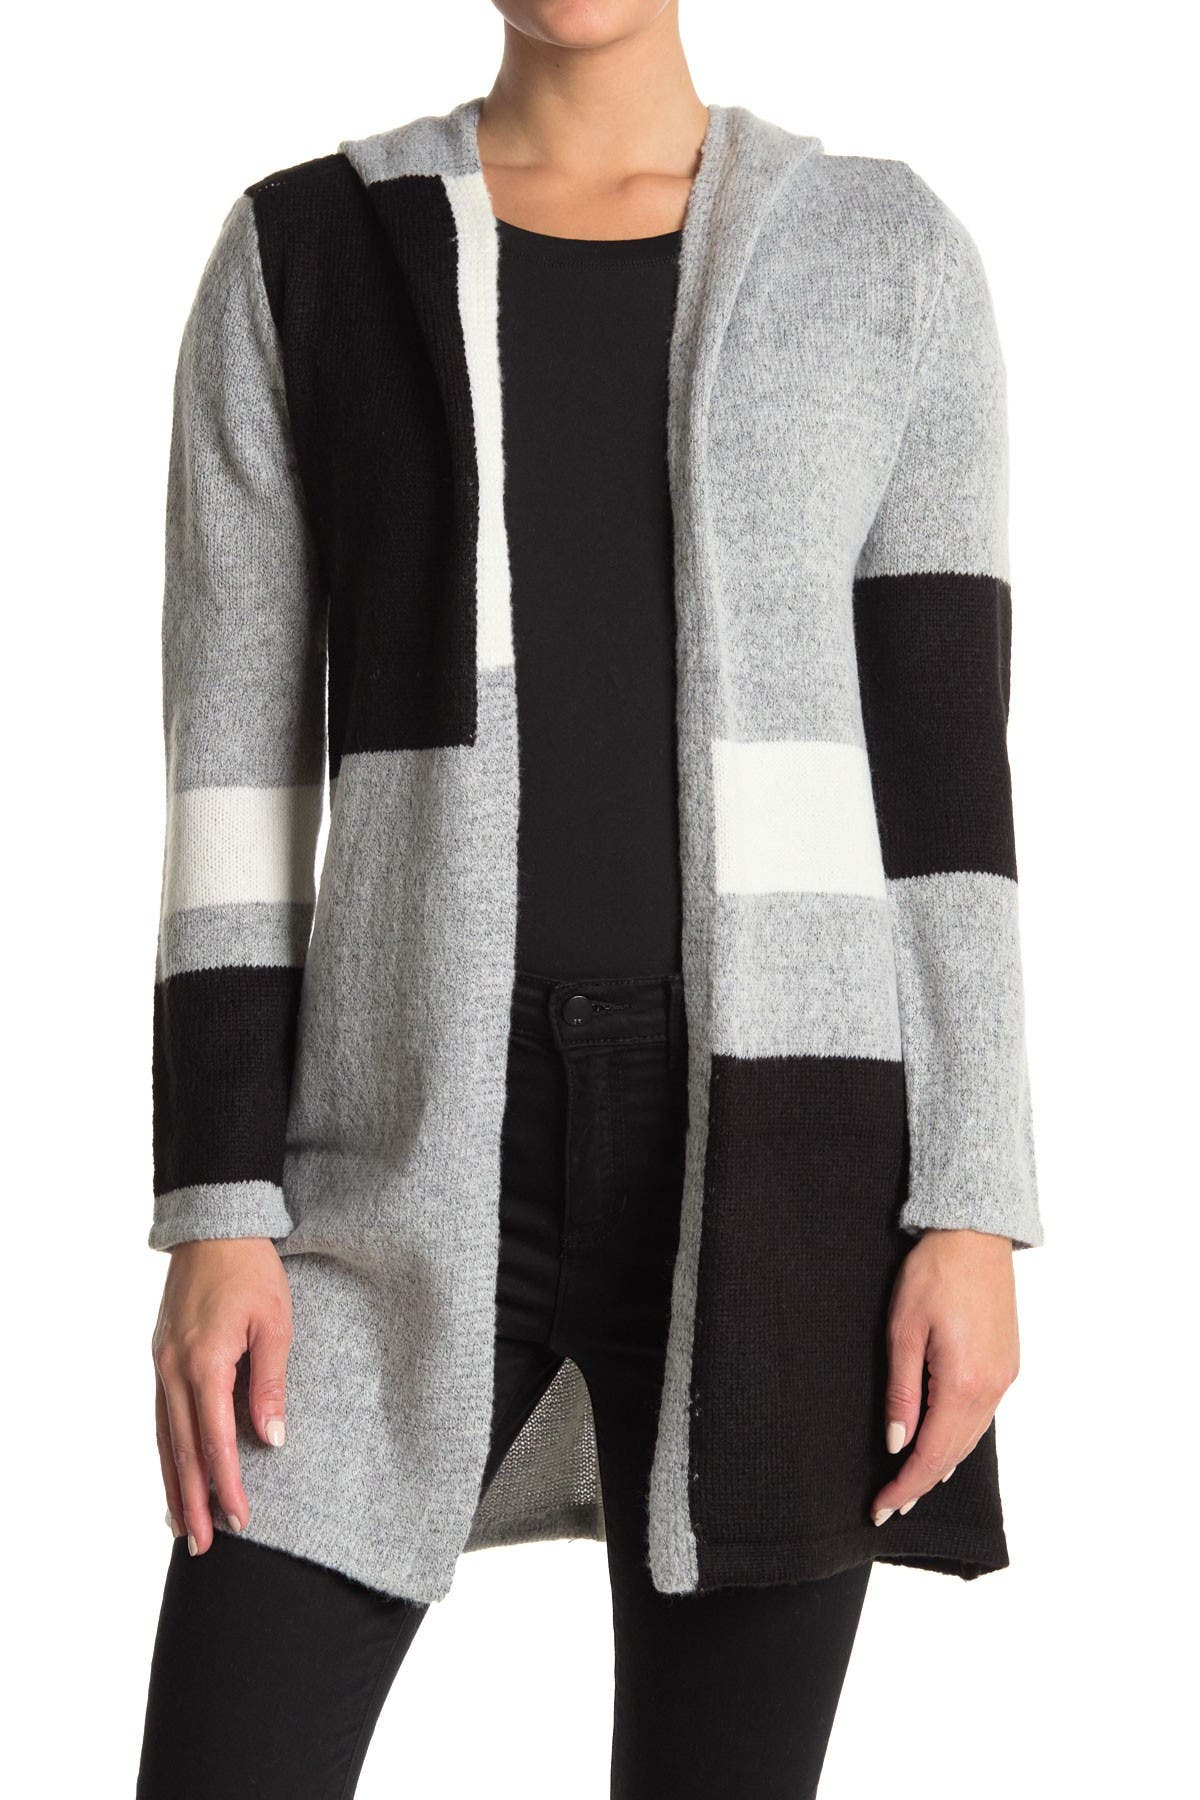 Image of Love by Design Apollo Hooded Pattern Cardigan